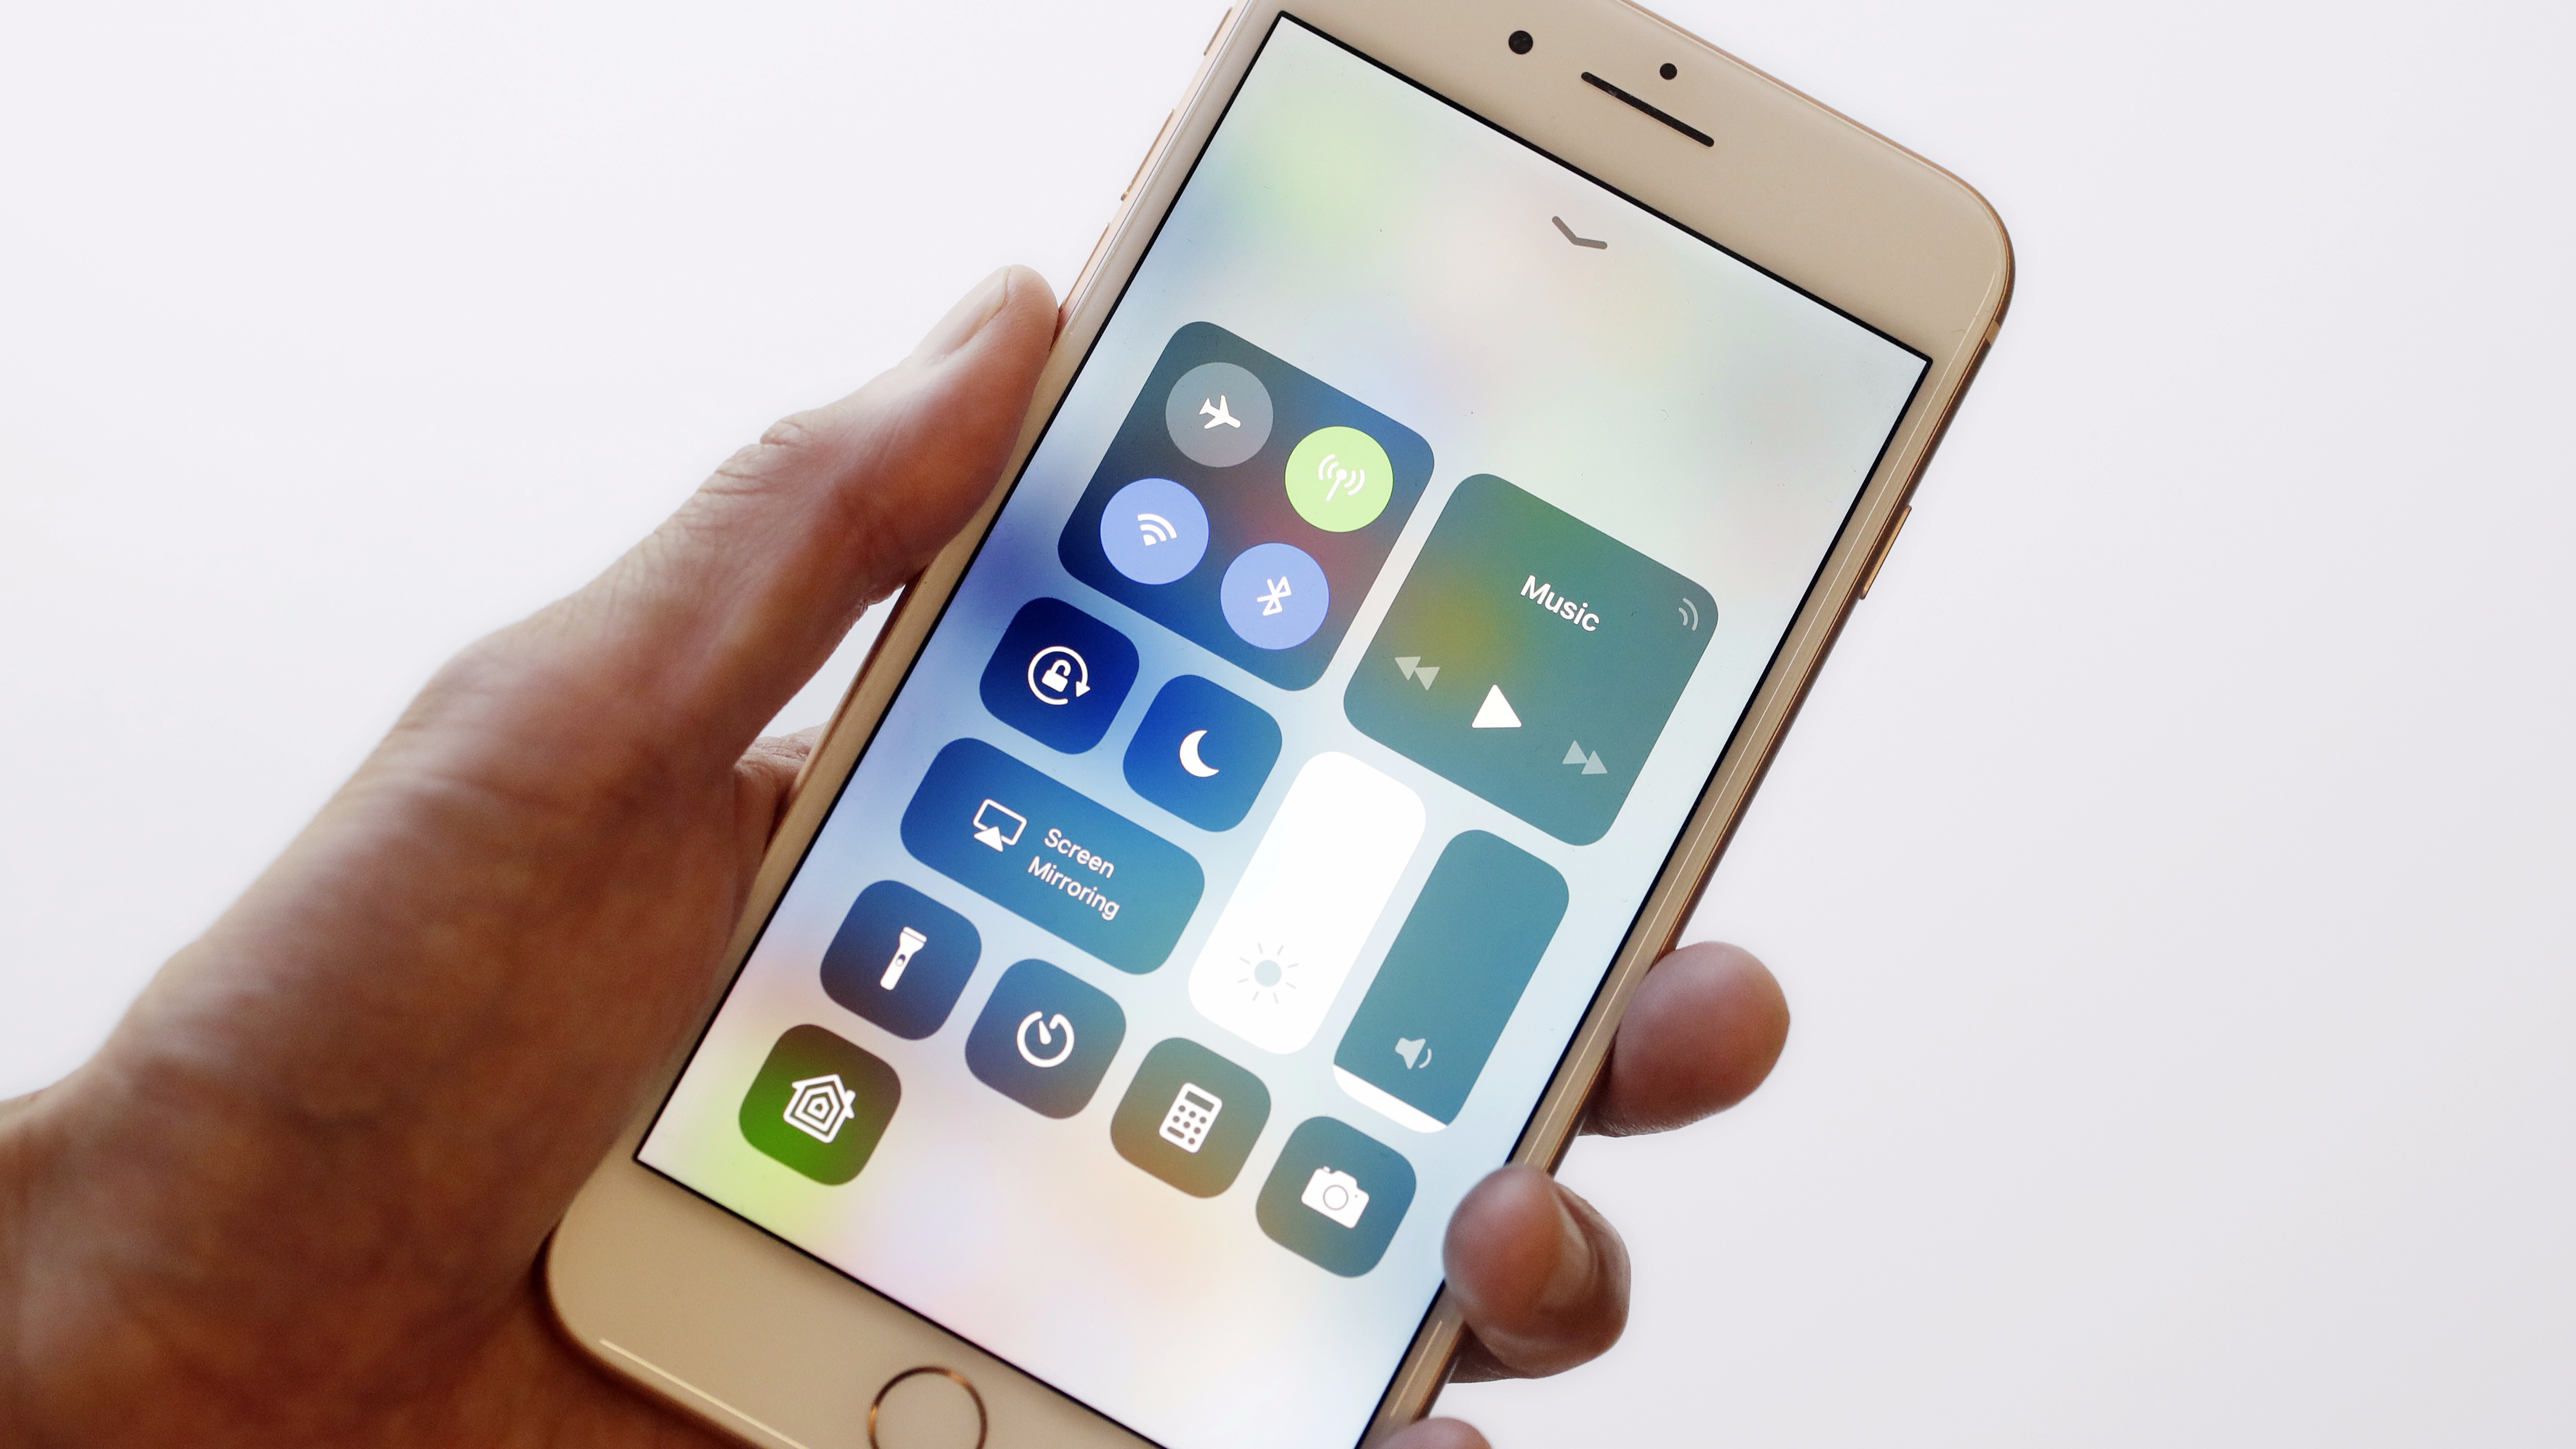 These Are The Hidden Features On Apple's iOS 11 That You Need To Know About